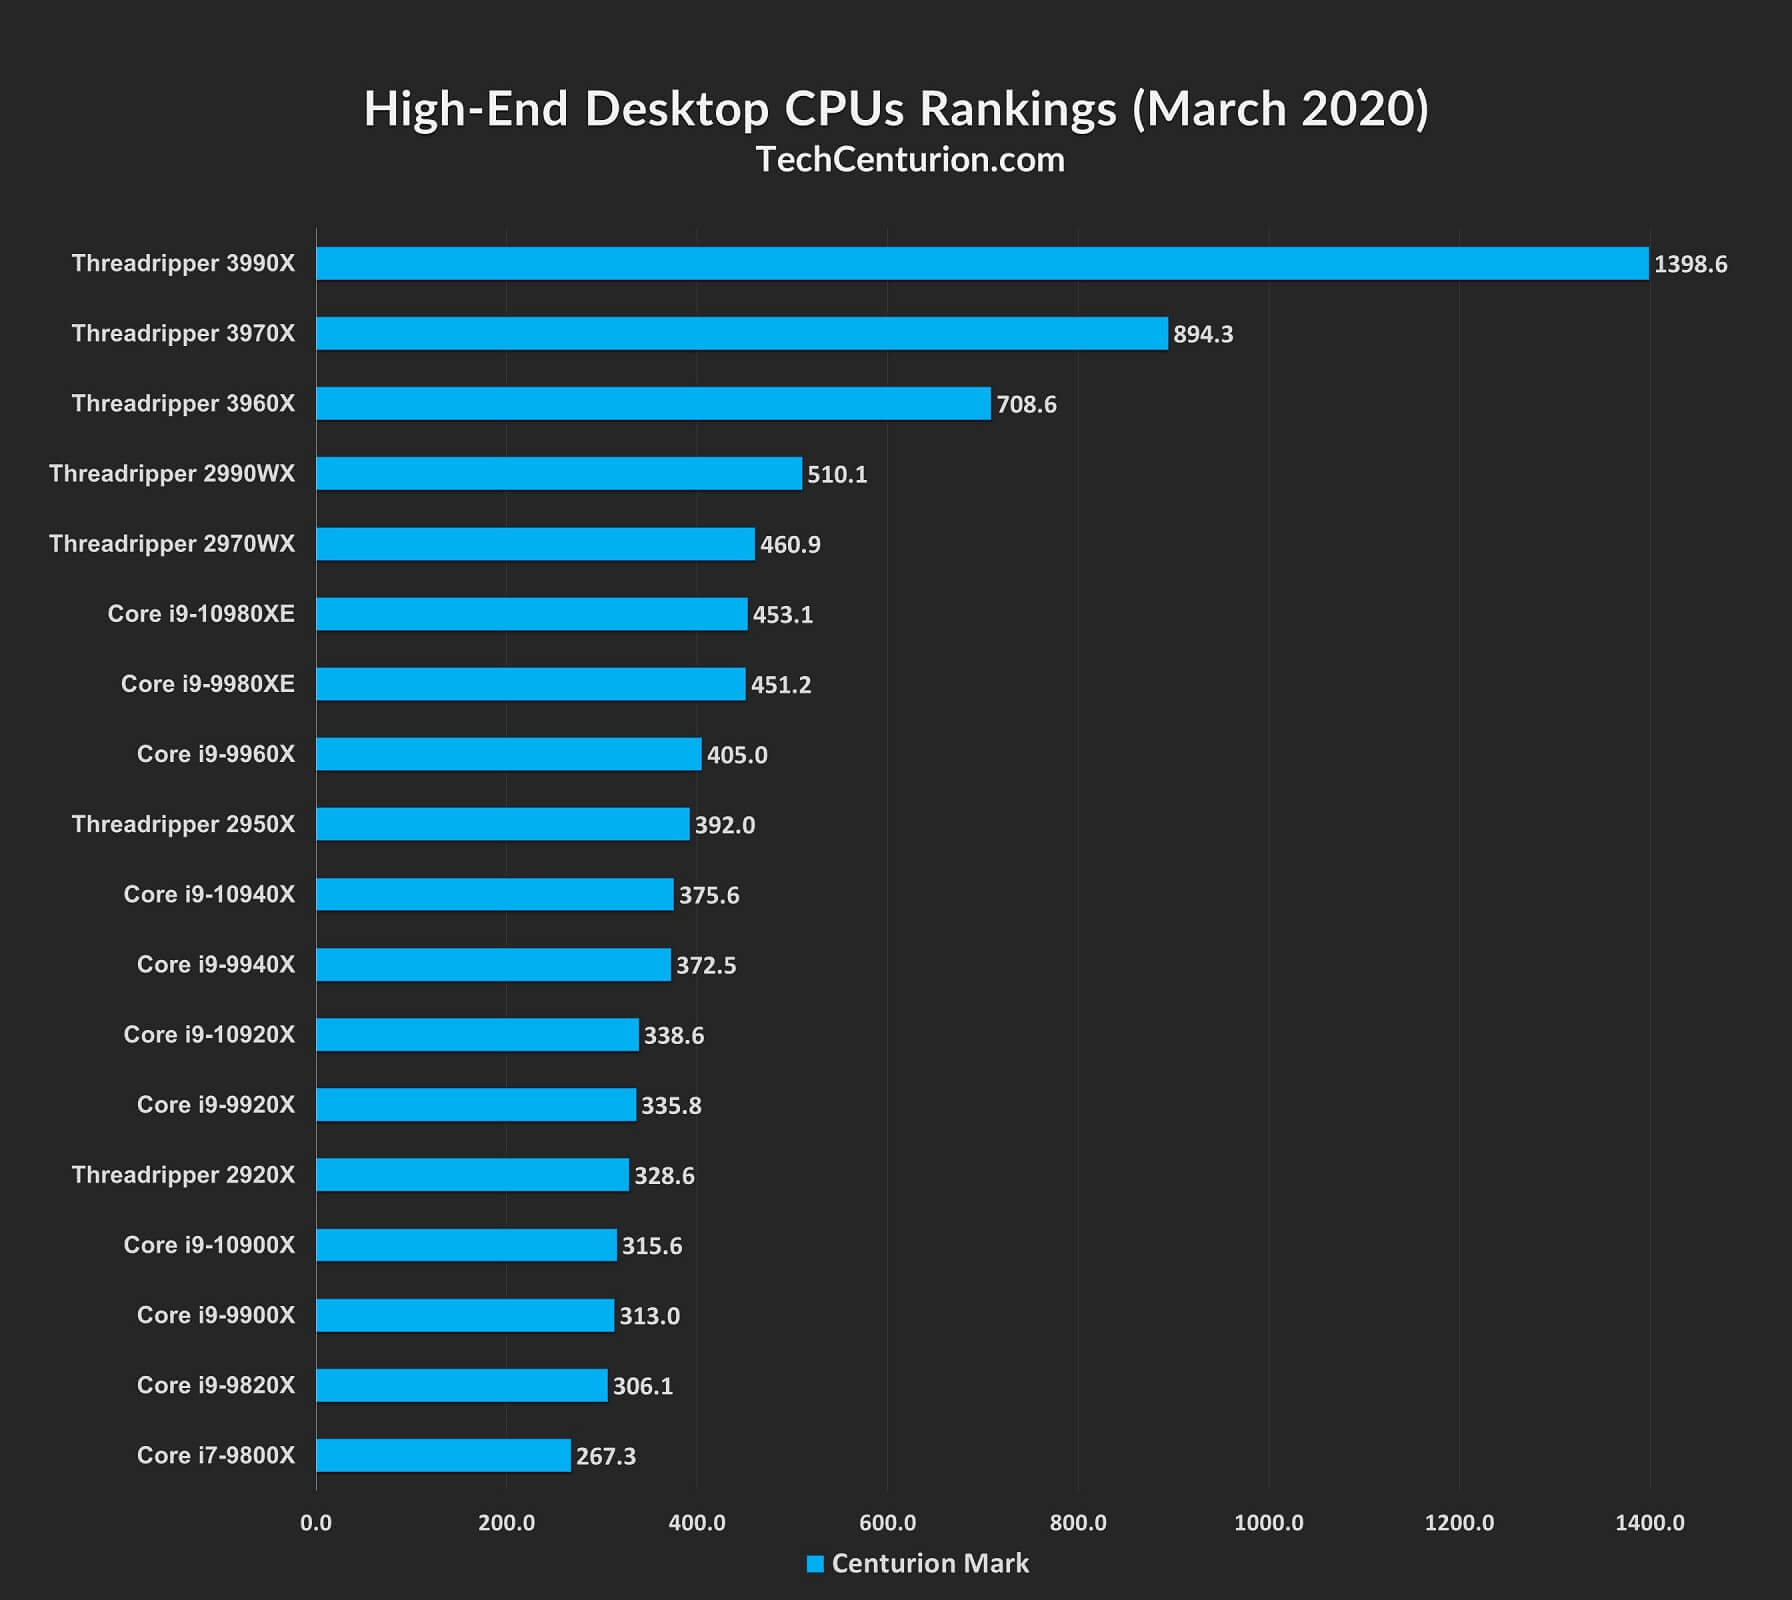 High-End Desktop (HEDT) CPU Rankings